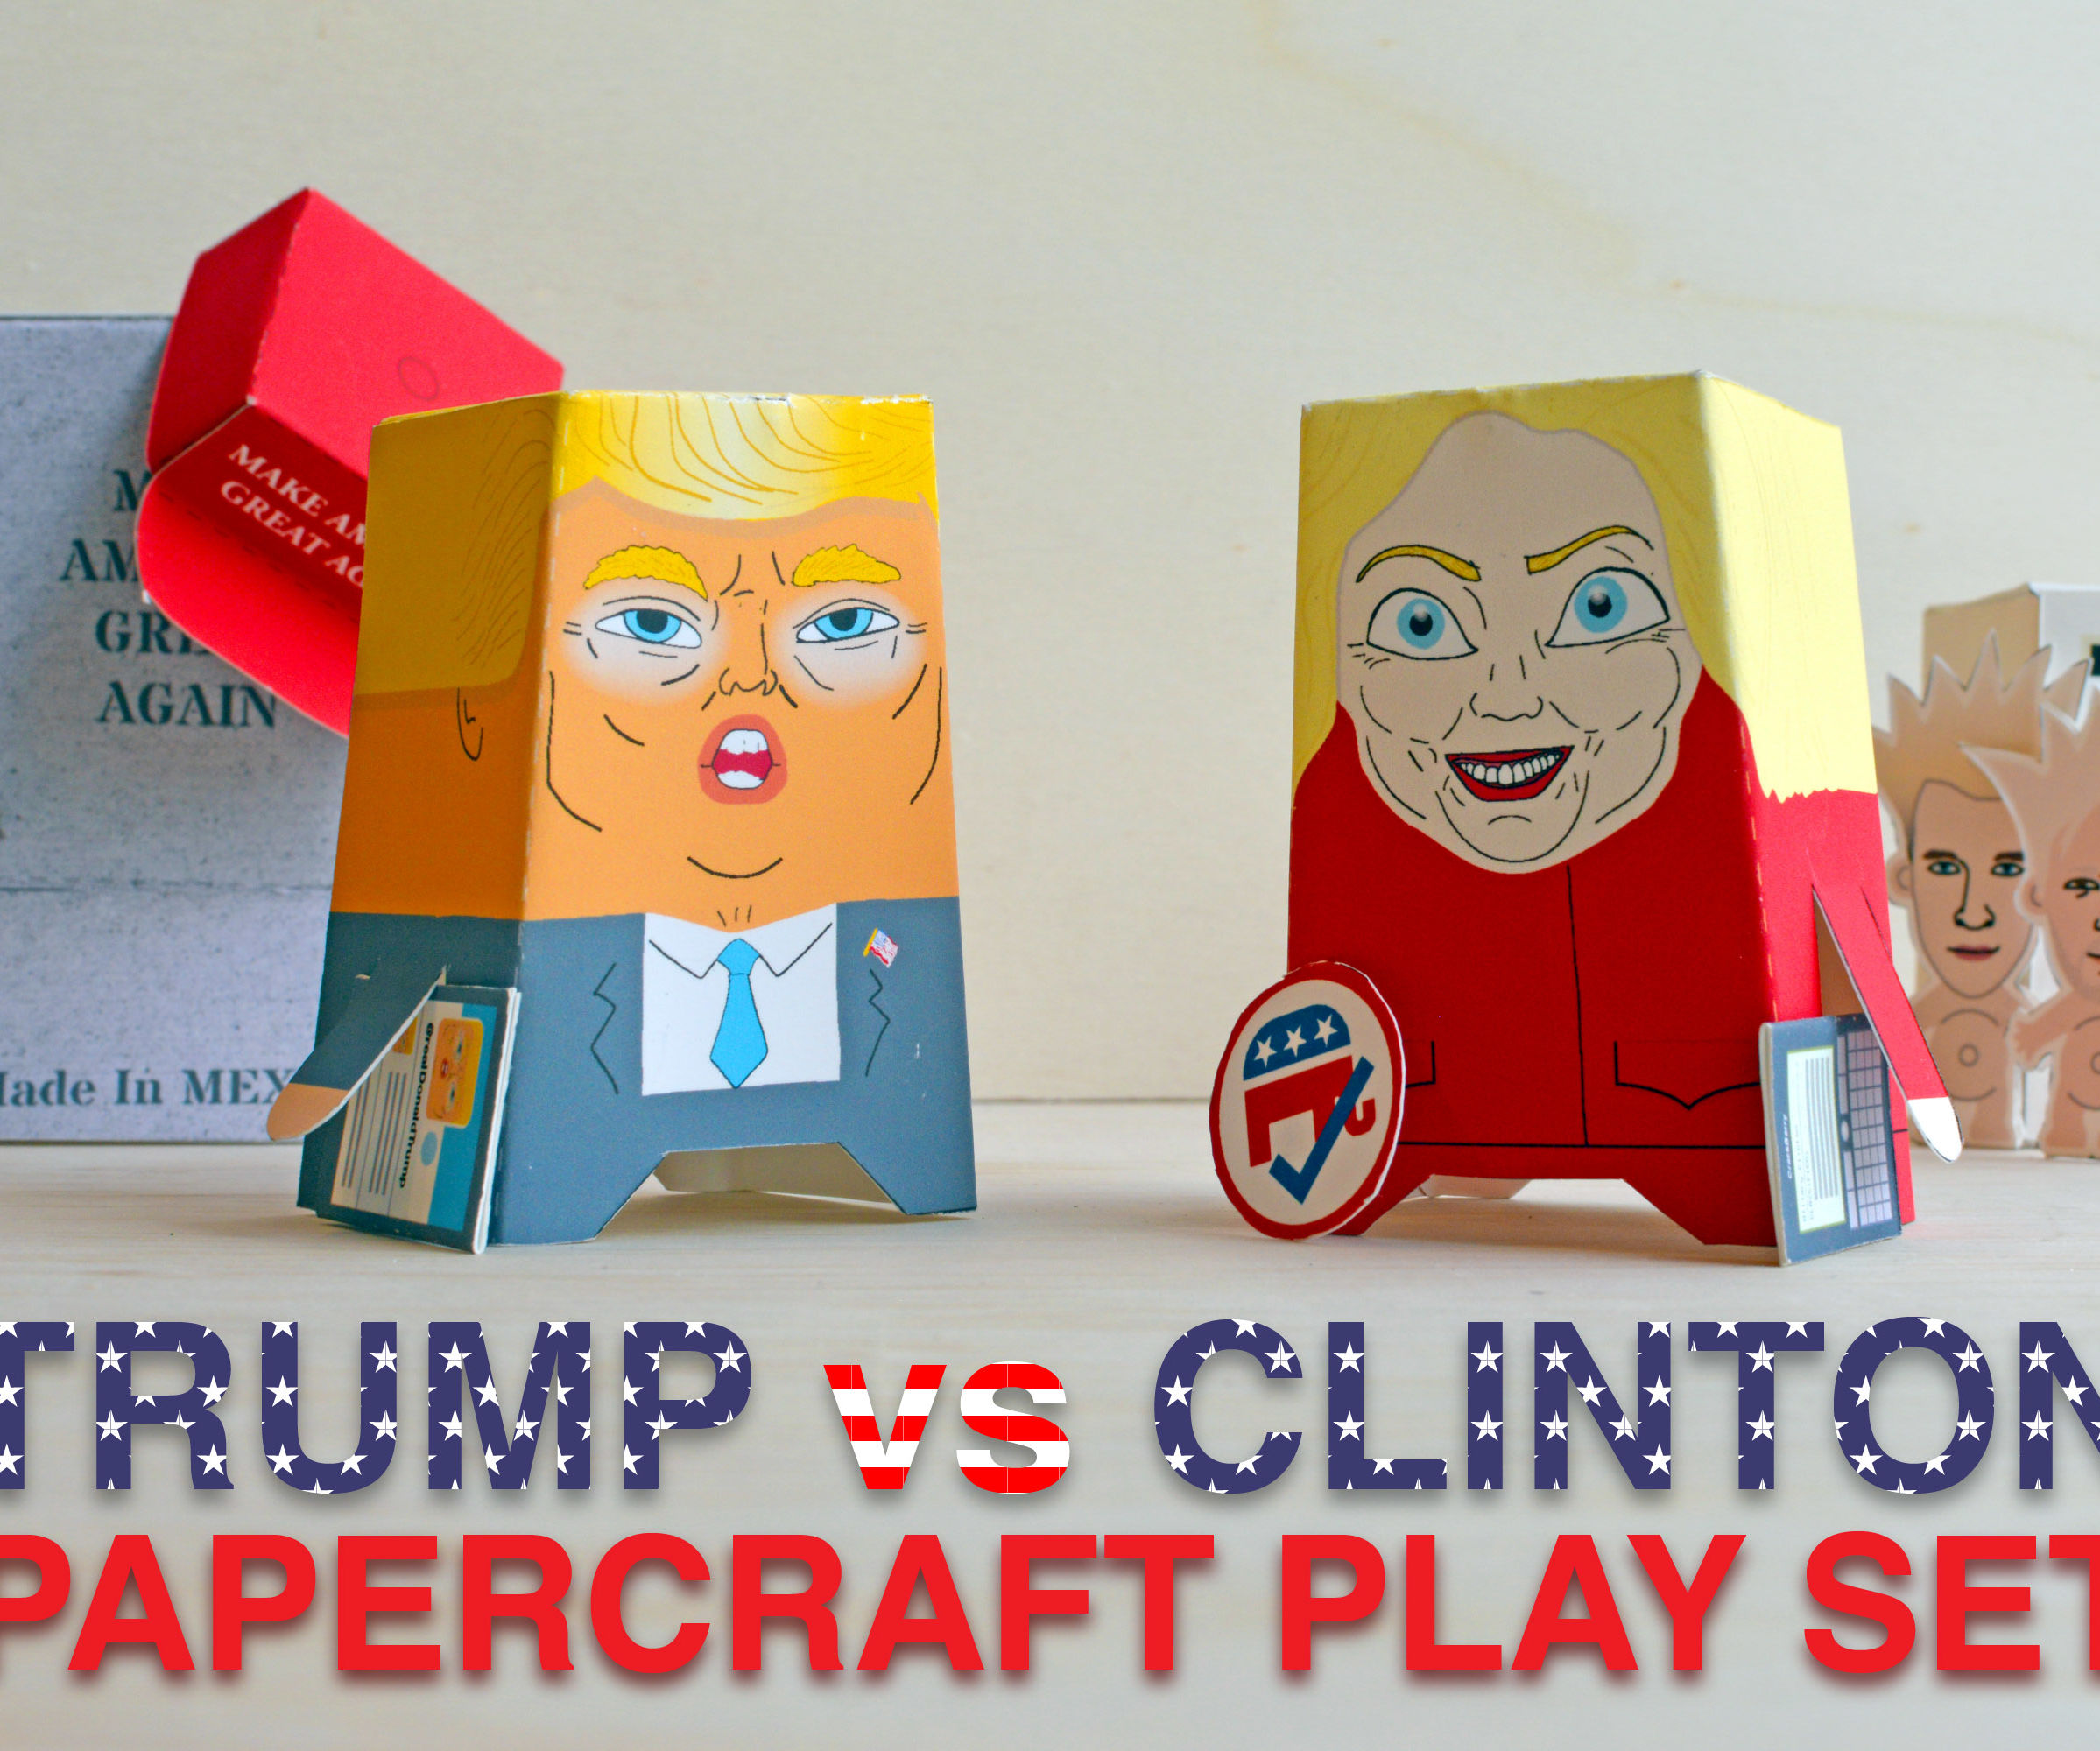 Trump vs Clinton Papercraft Play Set